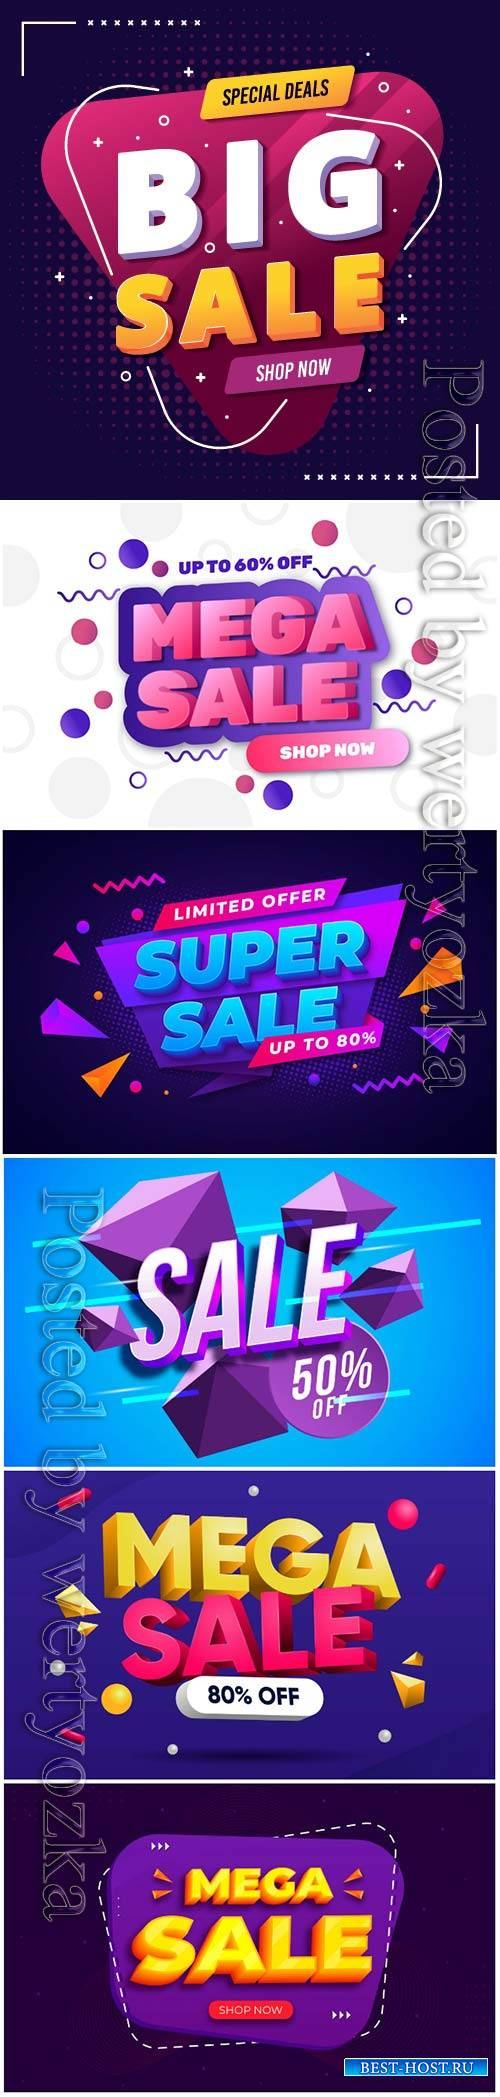 Colorful 3d sales vector background # 3